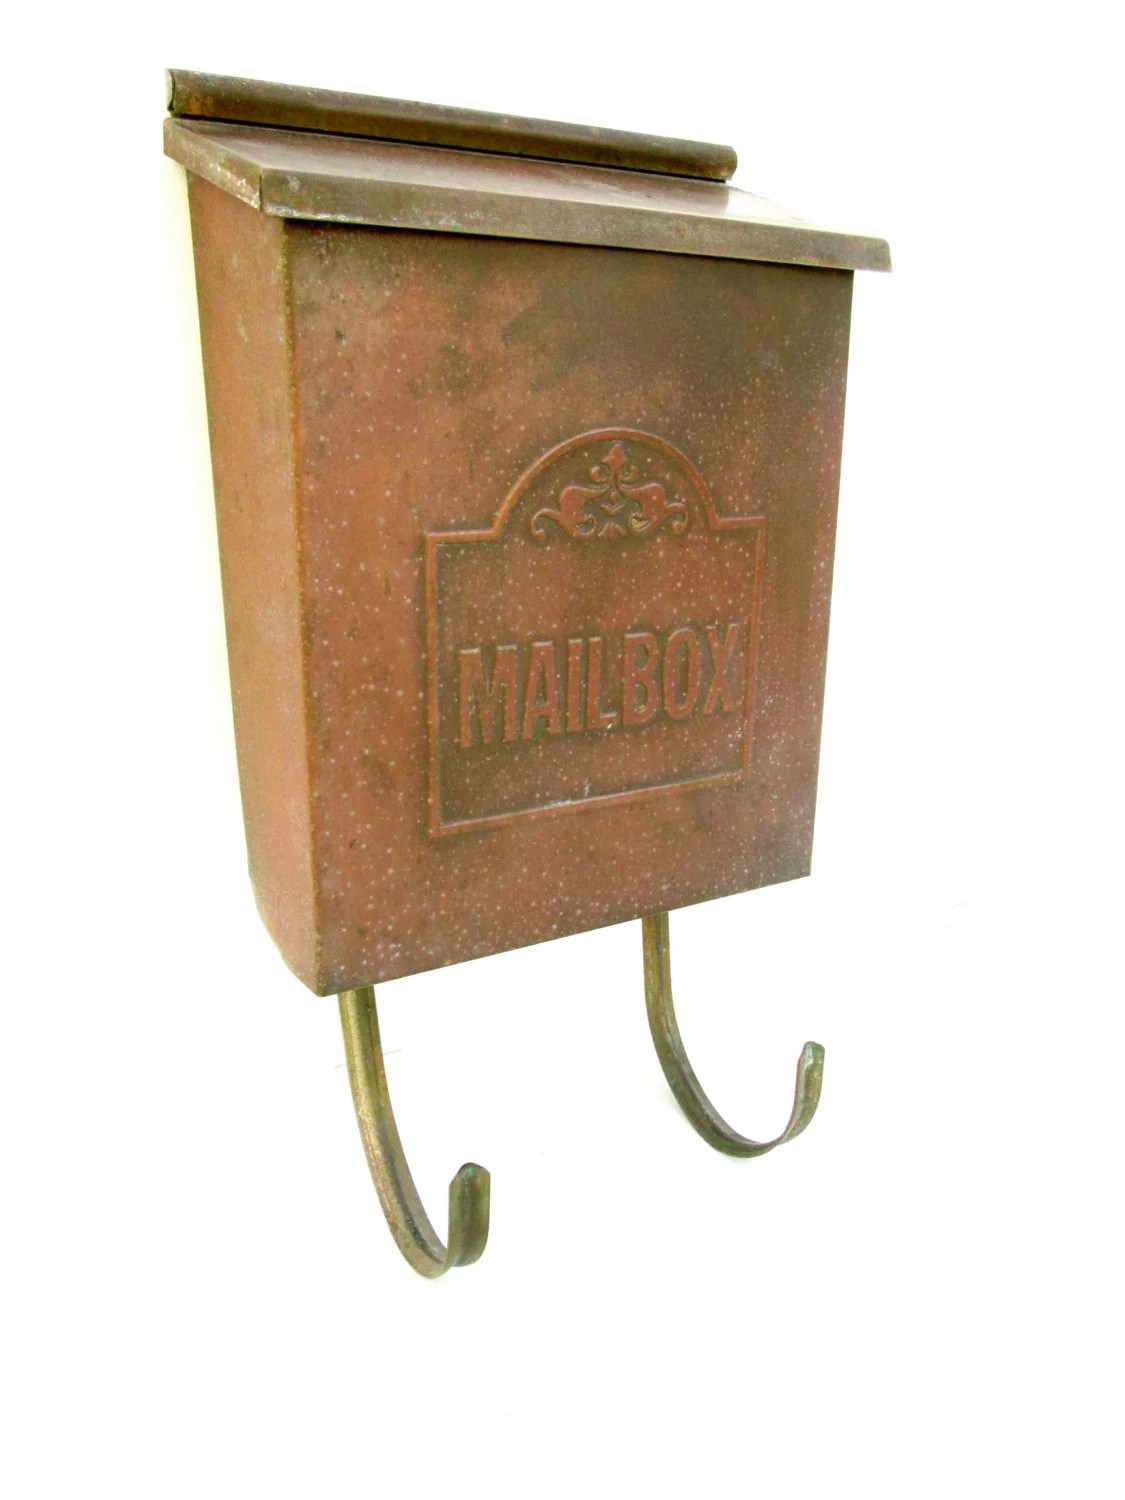 Copper Mailbox Patina Vintage Copper Wall Mount Mailbox Patina Brass Rustic